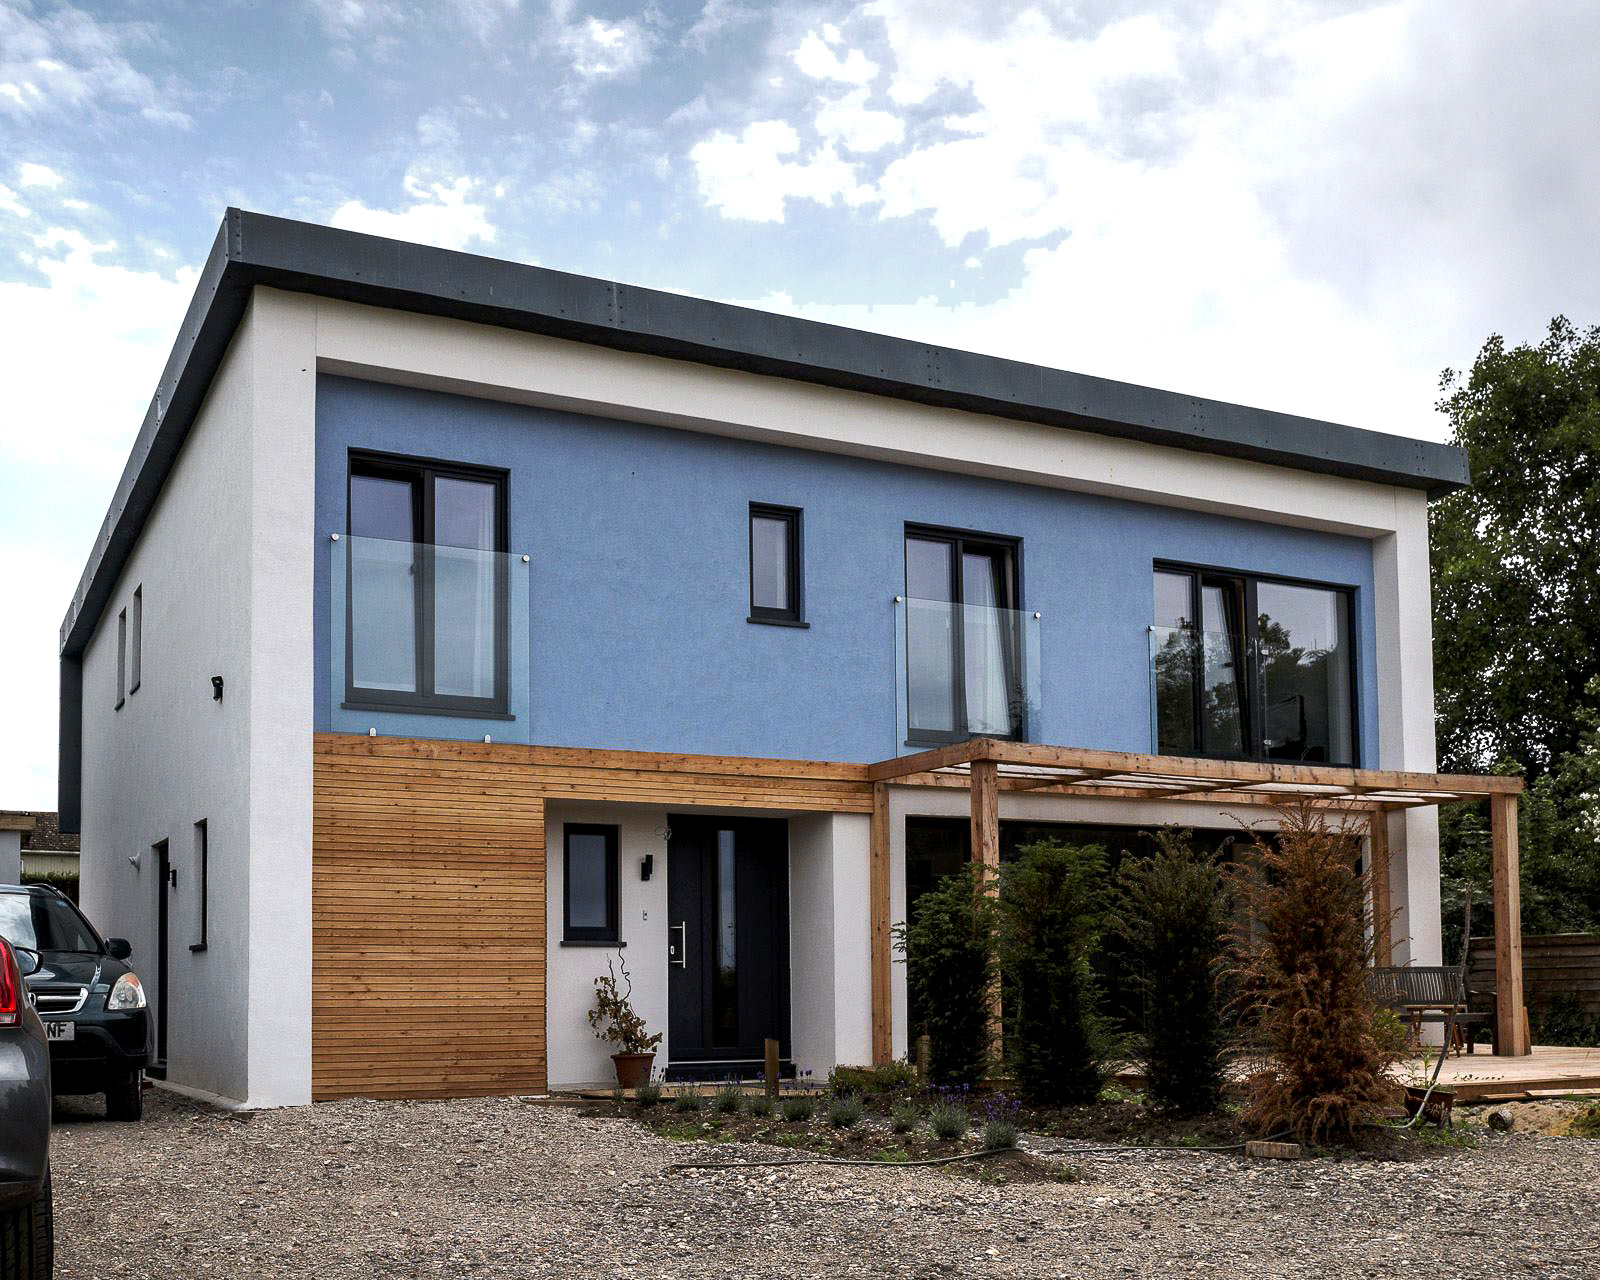 Goose Chase in Oxfordshire: our first project to PassivHaus standard, completed in 2015